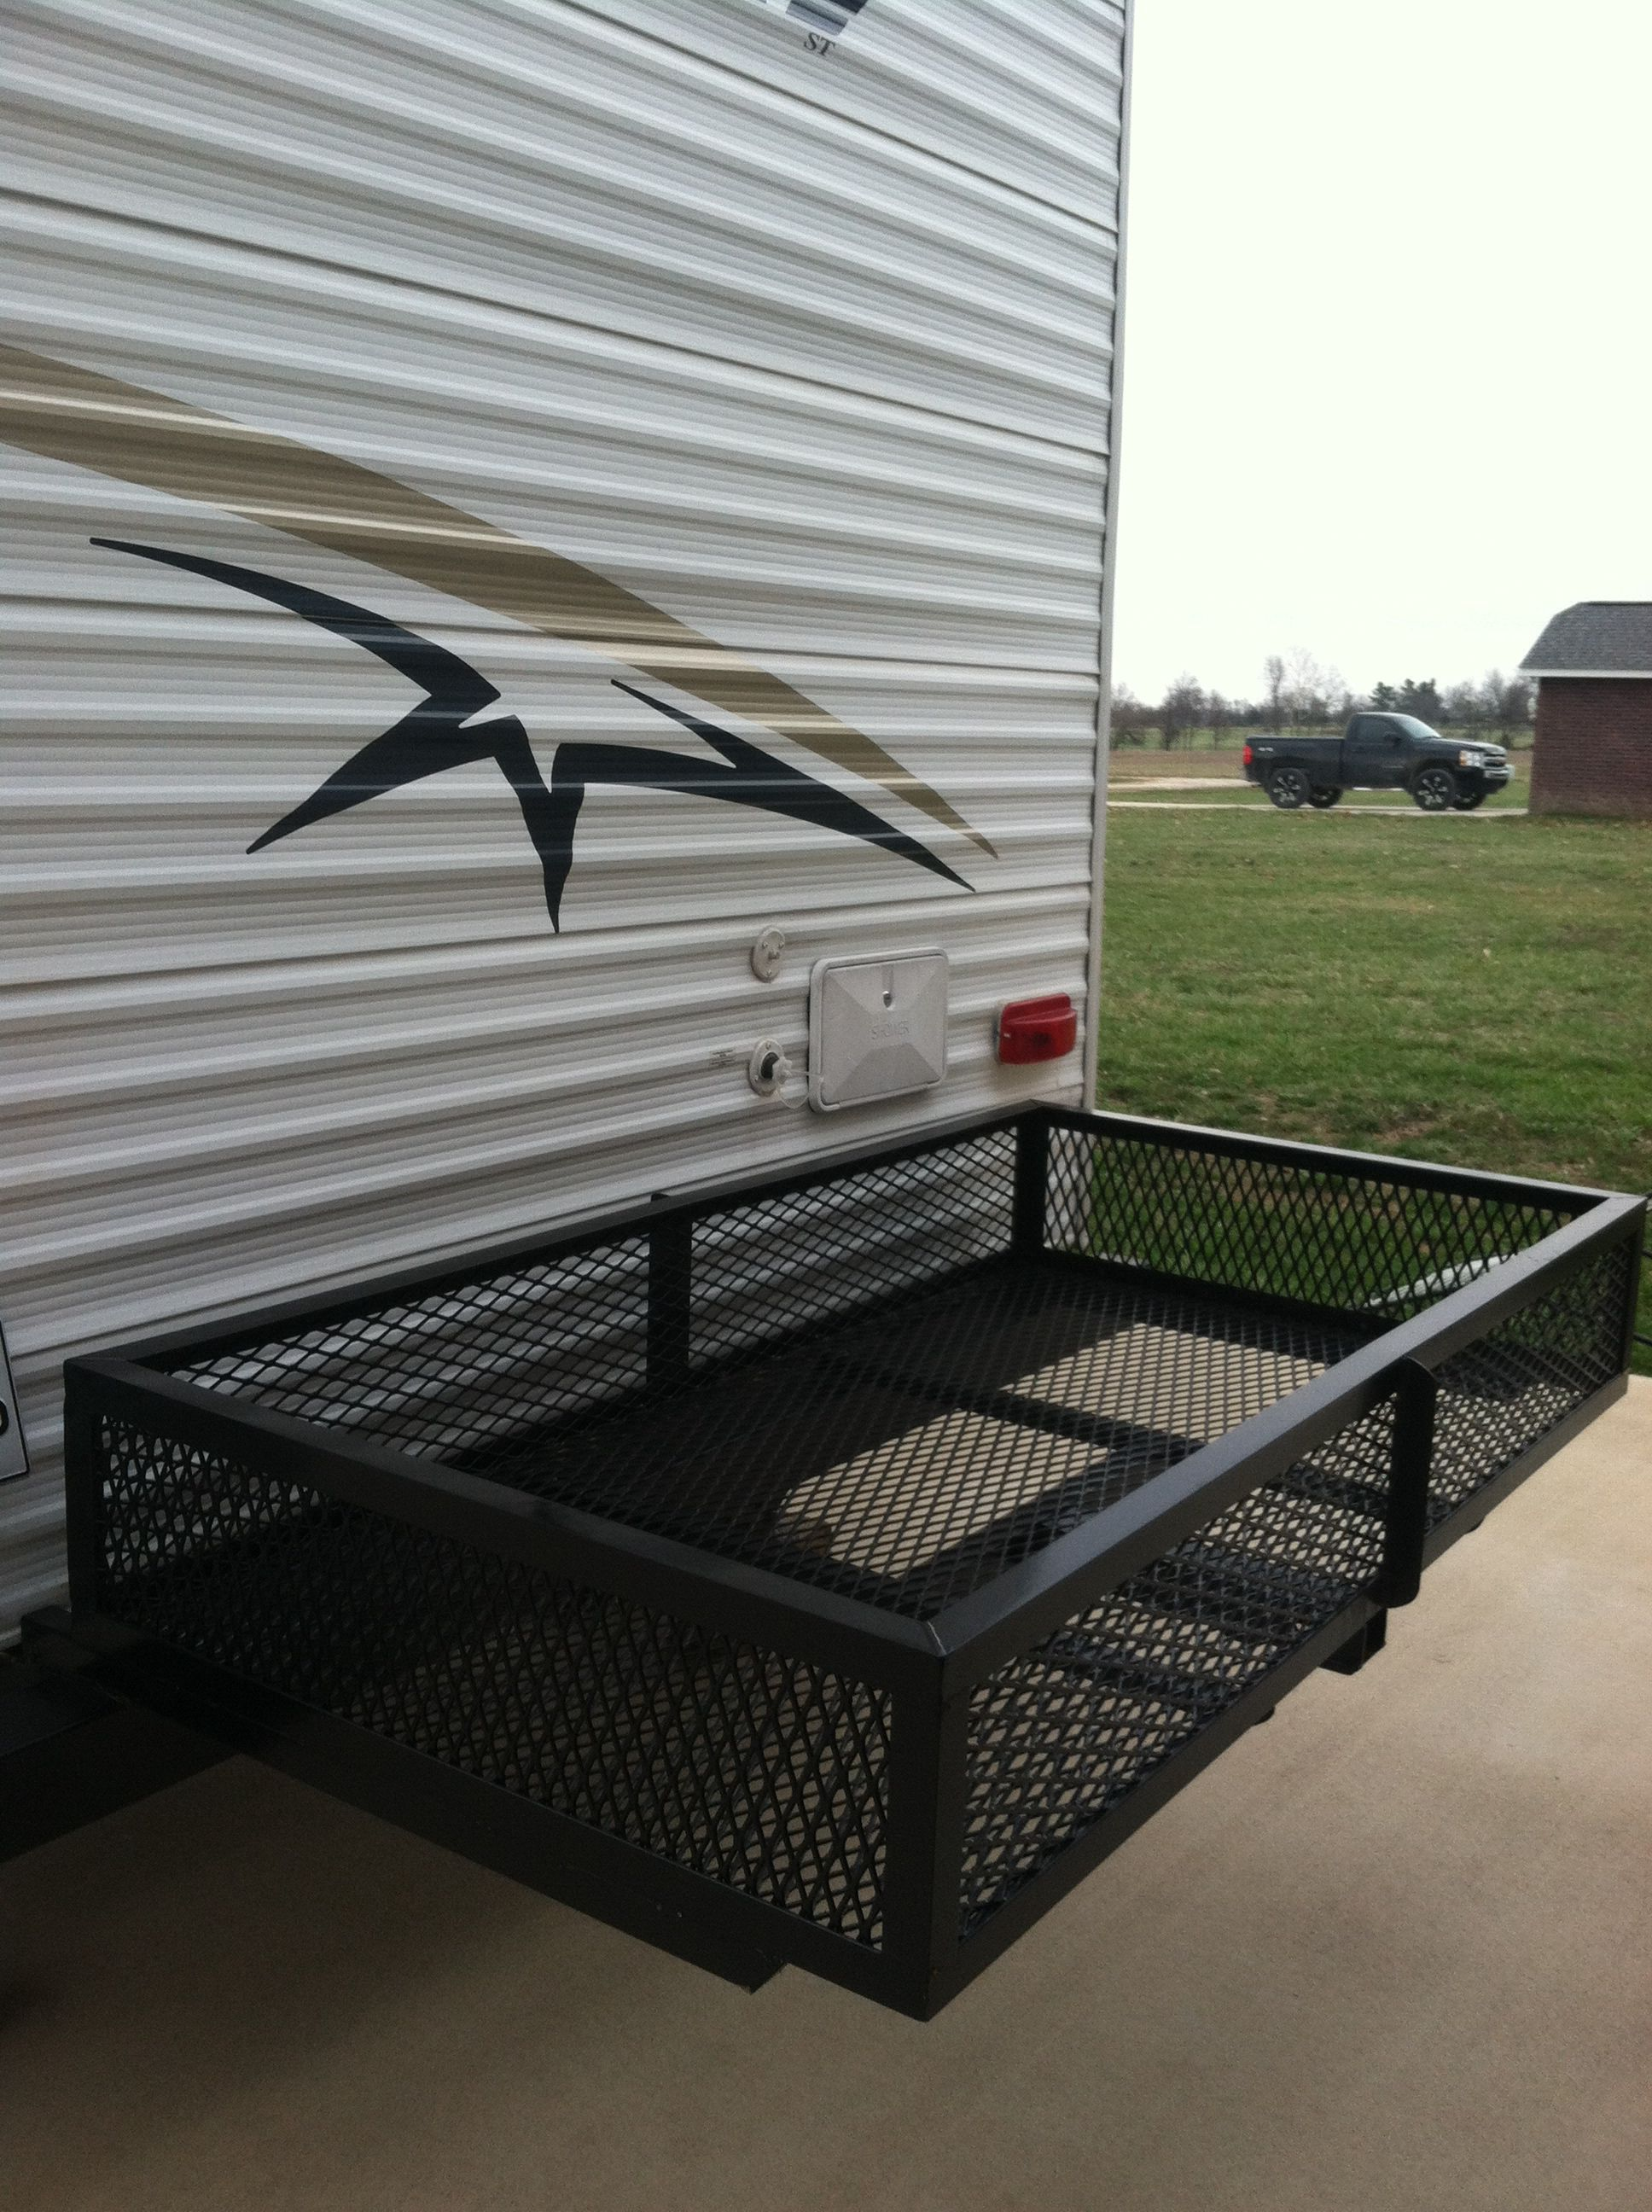 Our Diy Camper Bumper Storage Rack Brds Project Shop Pinterest Rvnet Open Roads Forum Fifthwheels Installing Battery Kill Switch